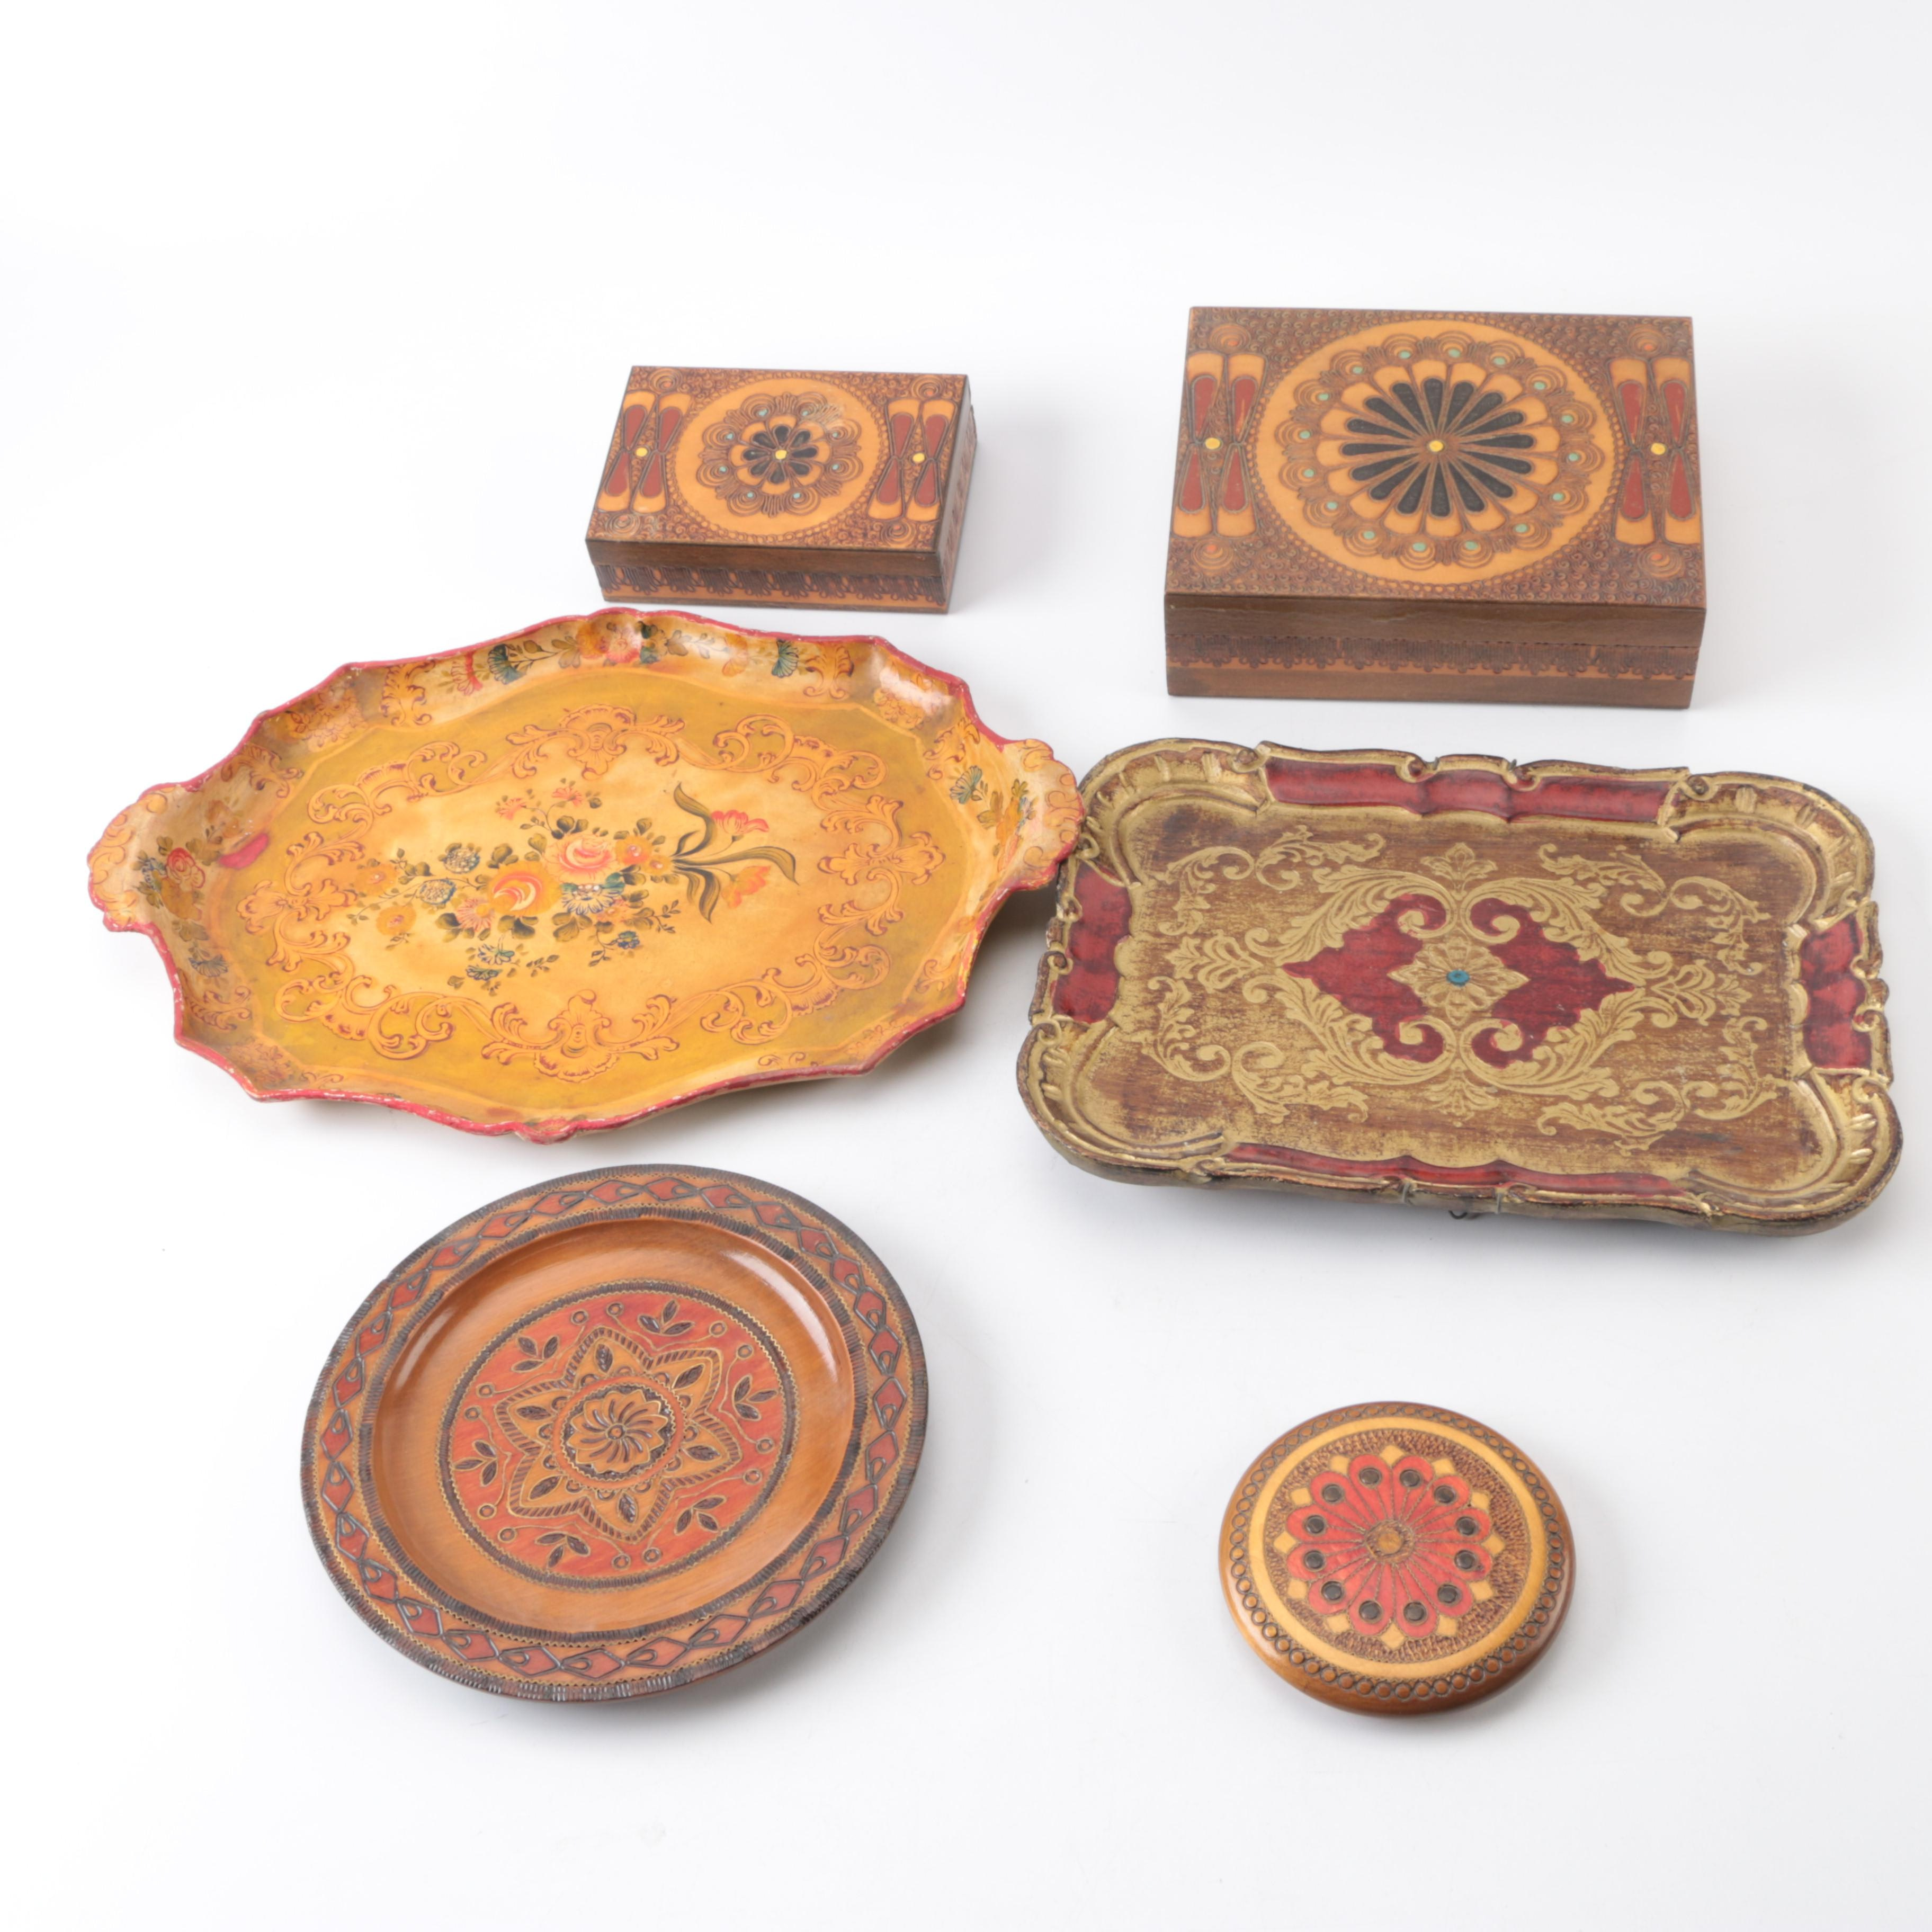 Decorative Vintage Style Wood Boxes, Trays, and Plates With Ornate Patterns